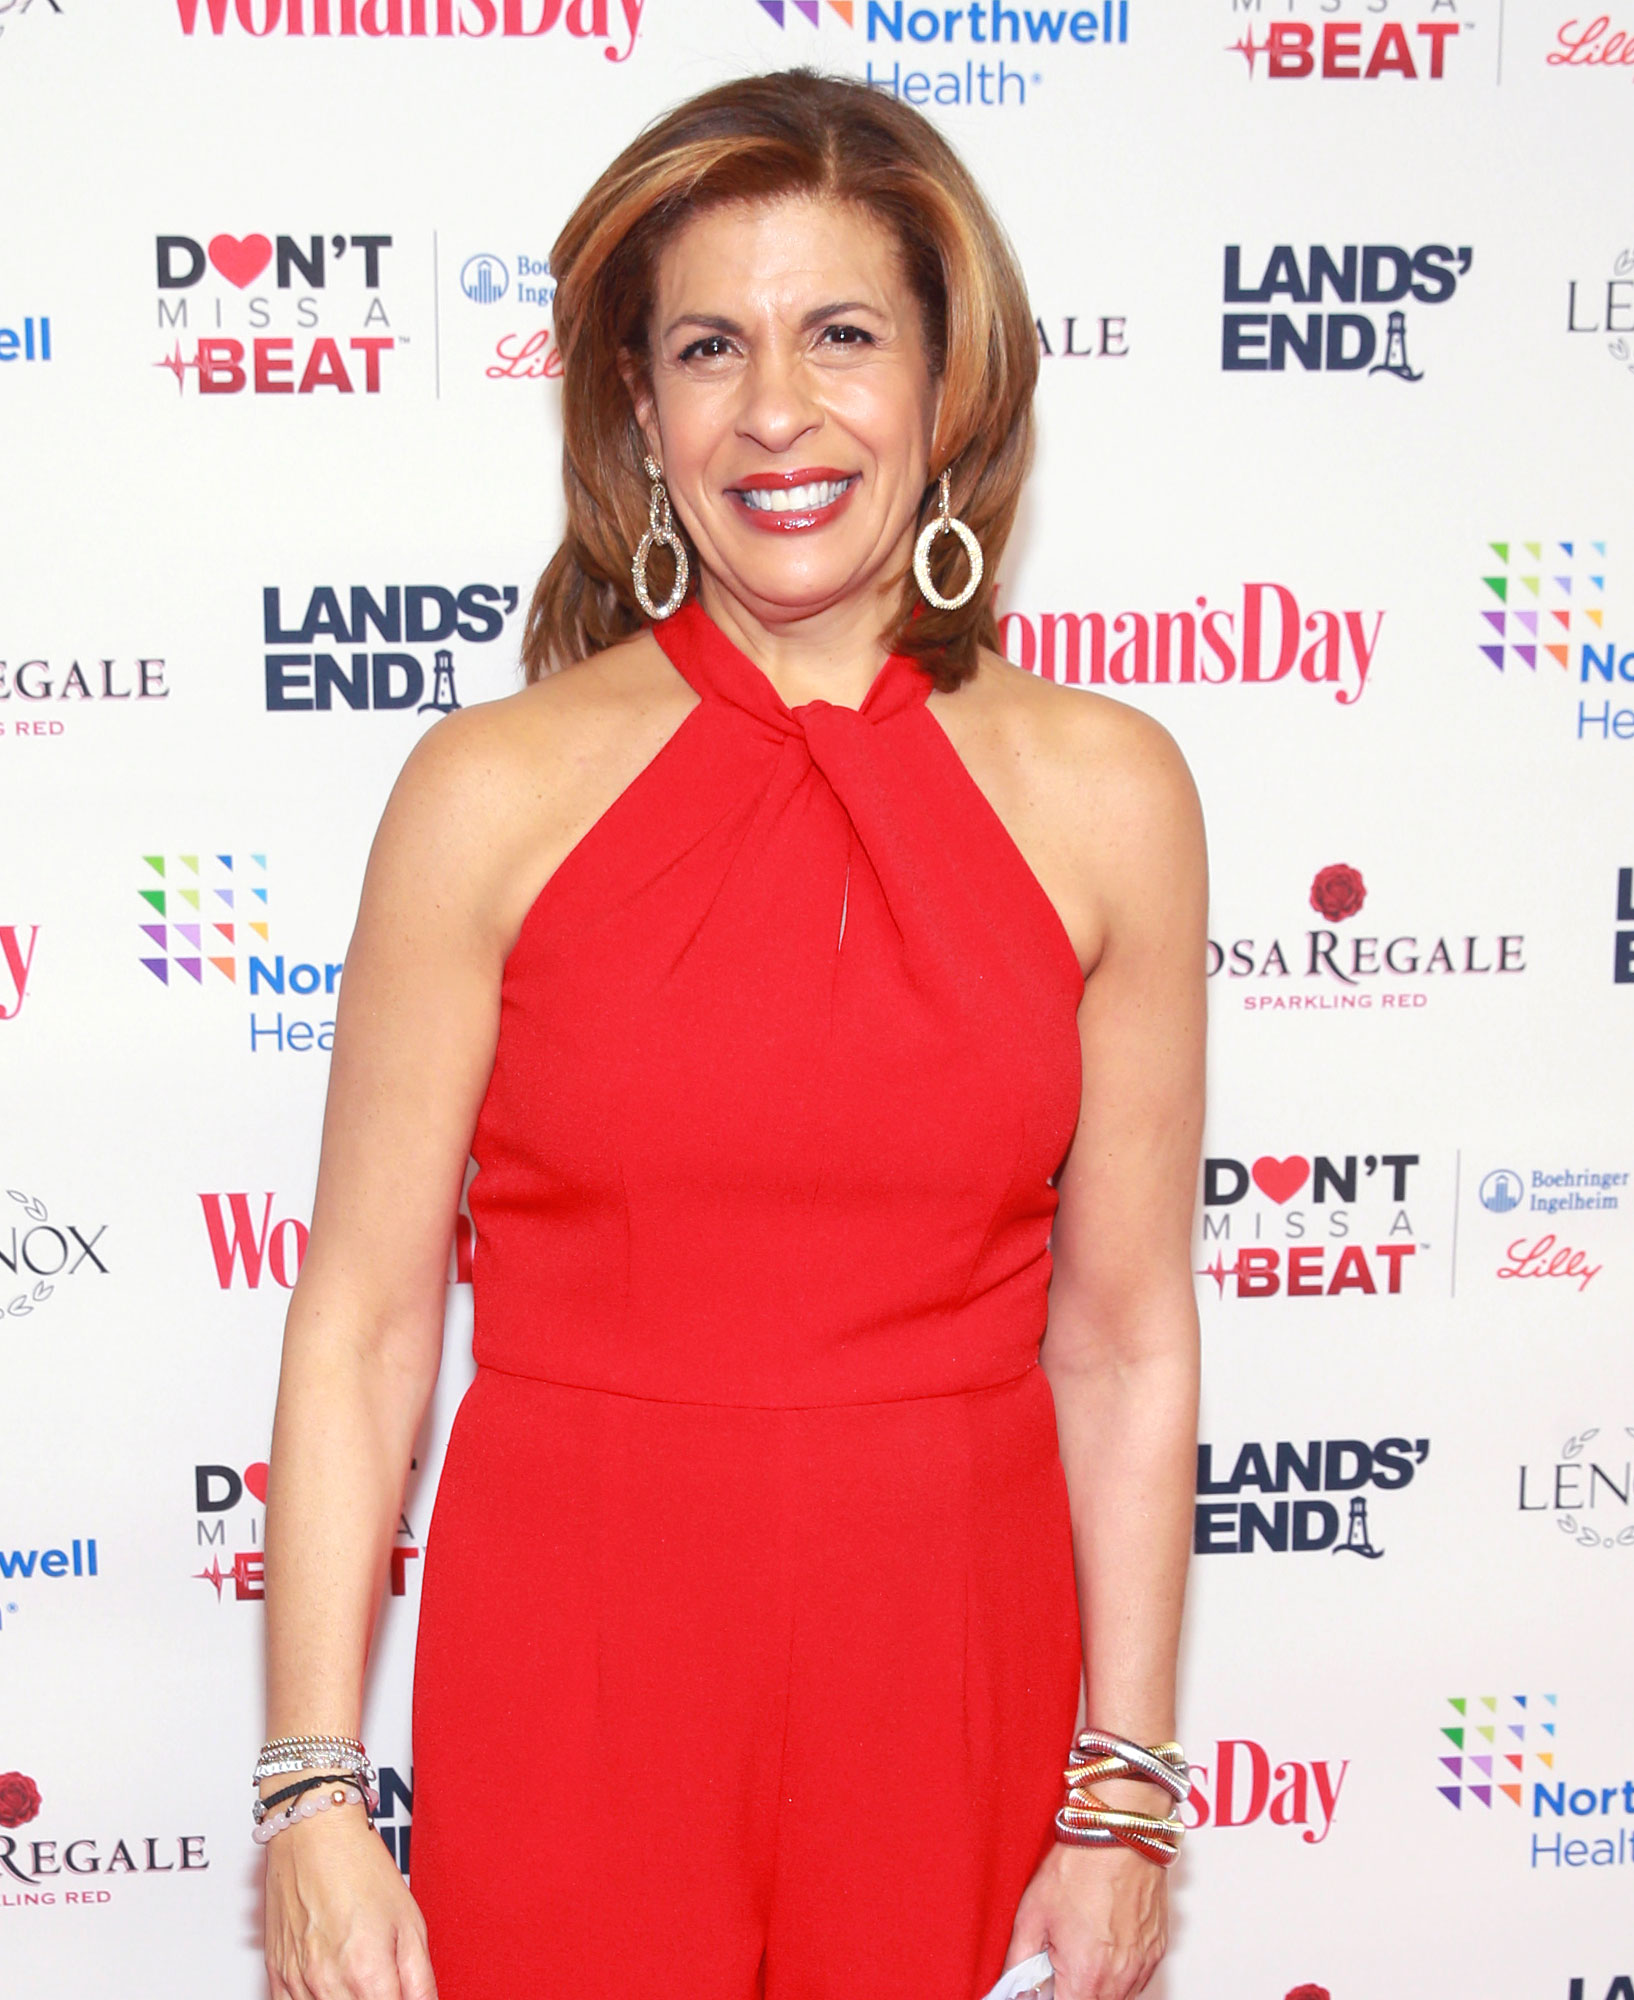 Hoda Kotb Reveals She's Thinking About a Second Child: 'It Is Something That Is Important to Me' hoda